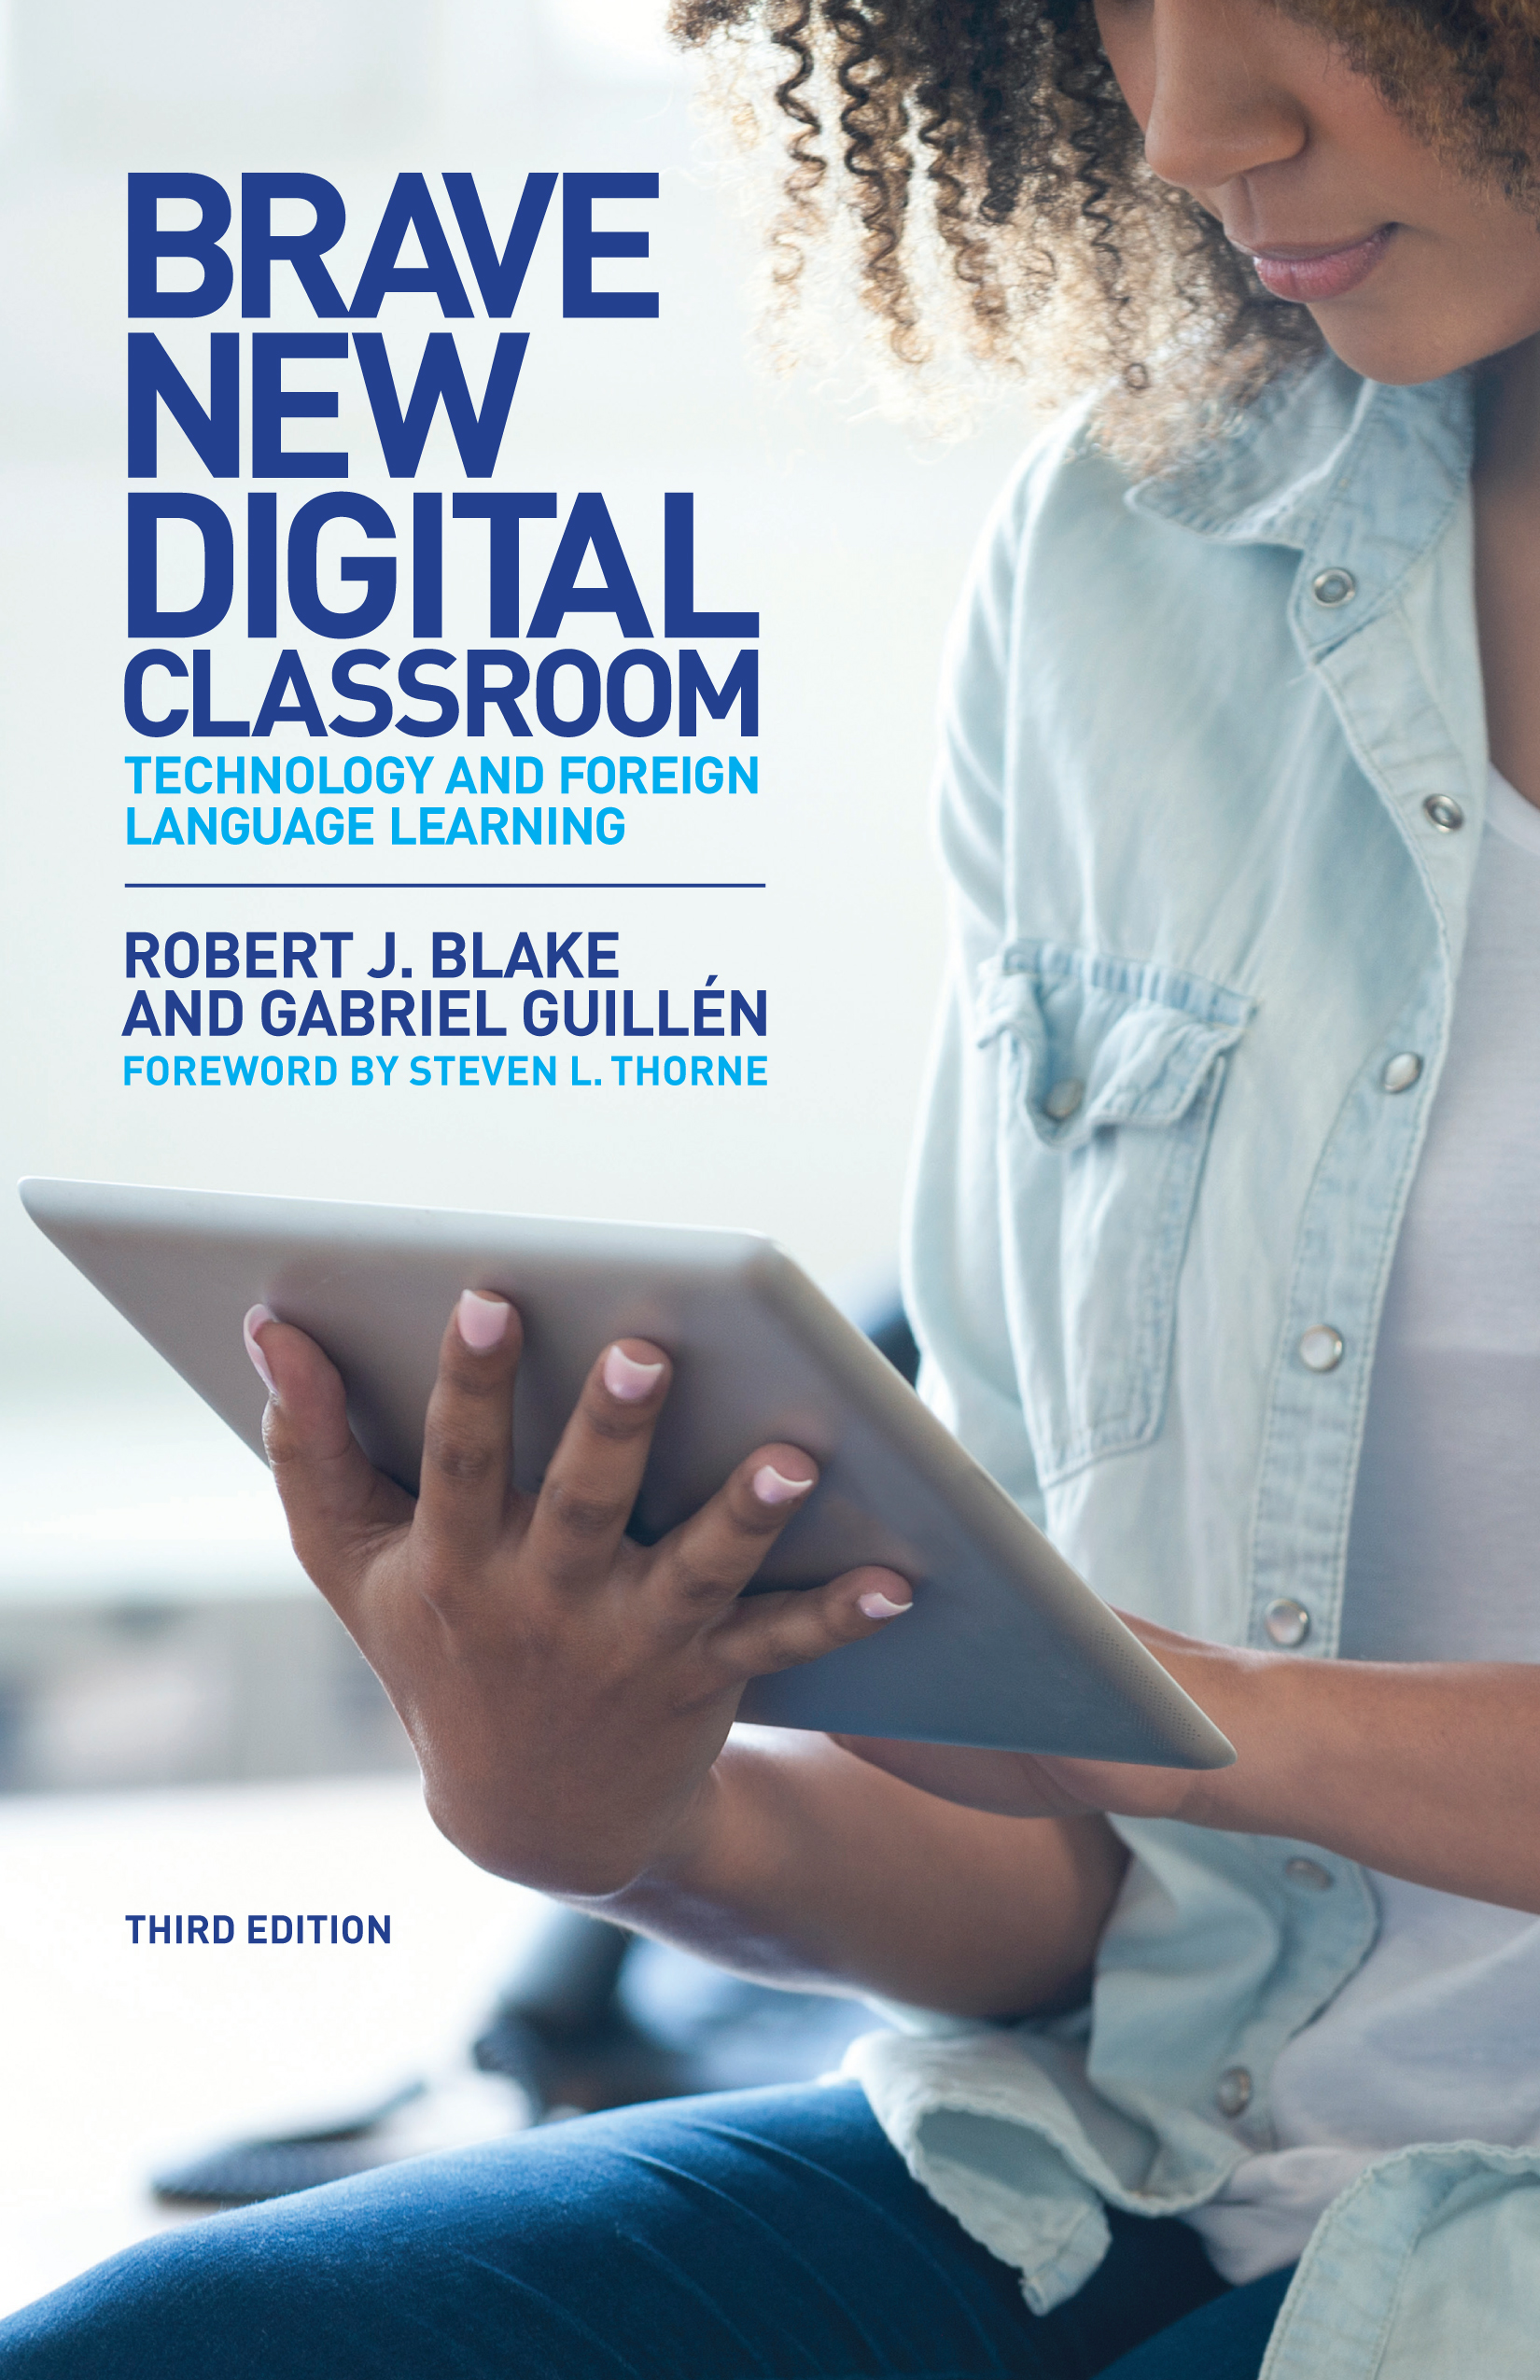 Brave New Digital Classroom, third edition